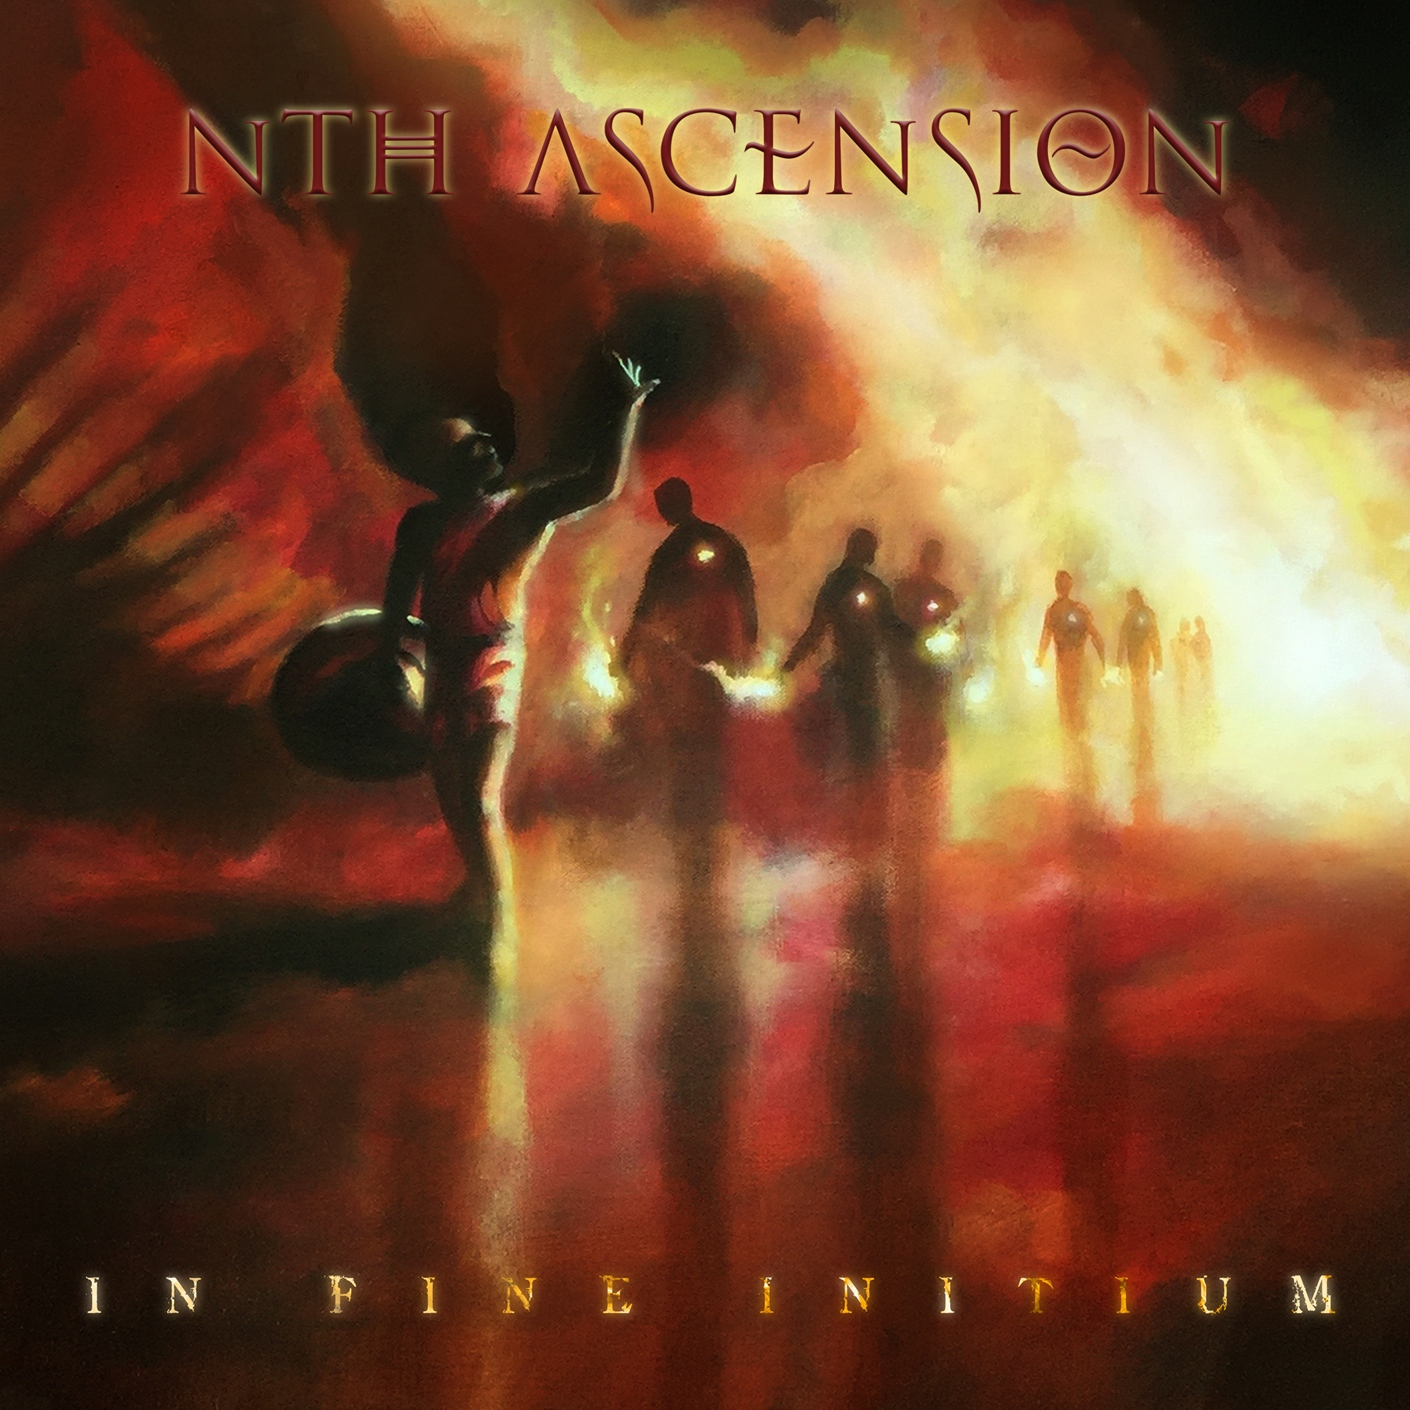 nth_ascension_-_in_fine_initium